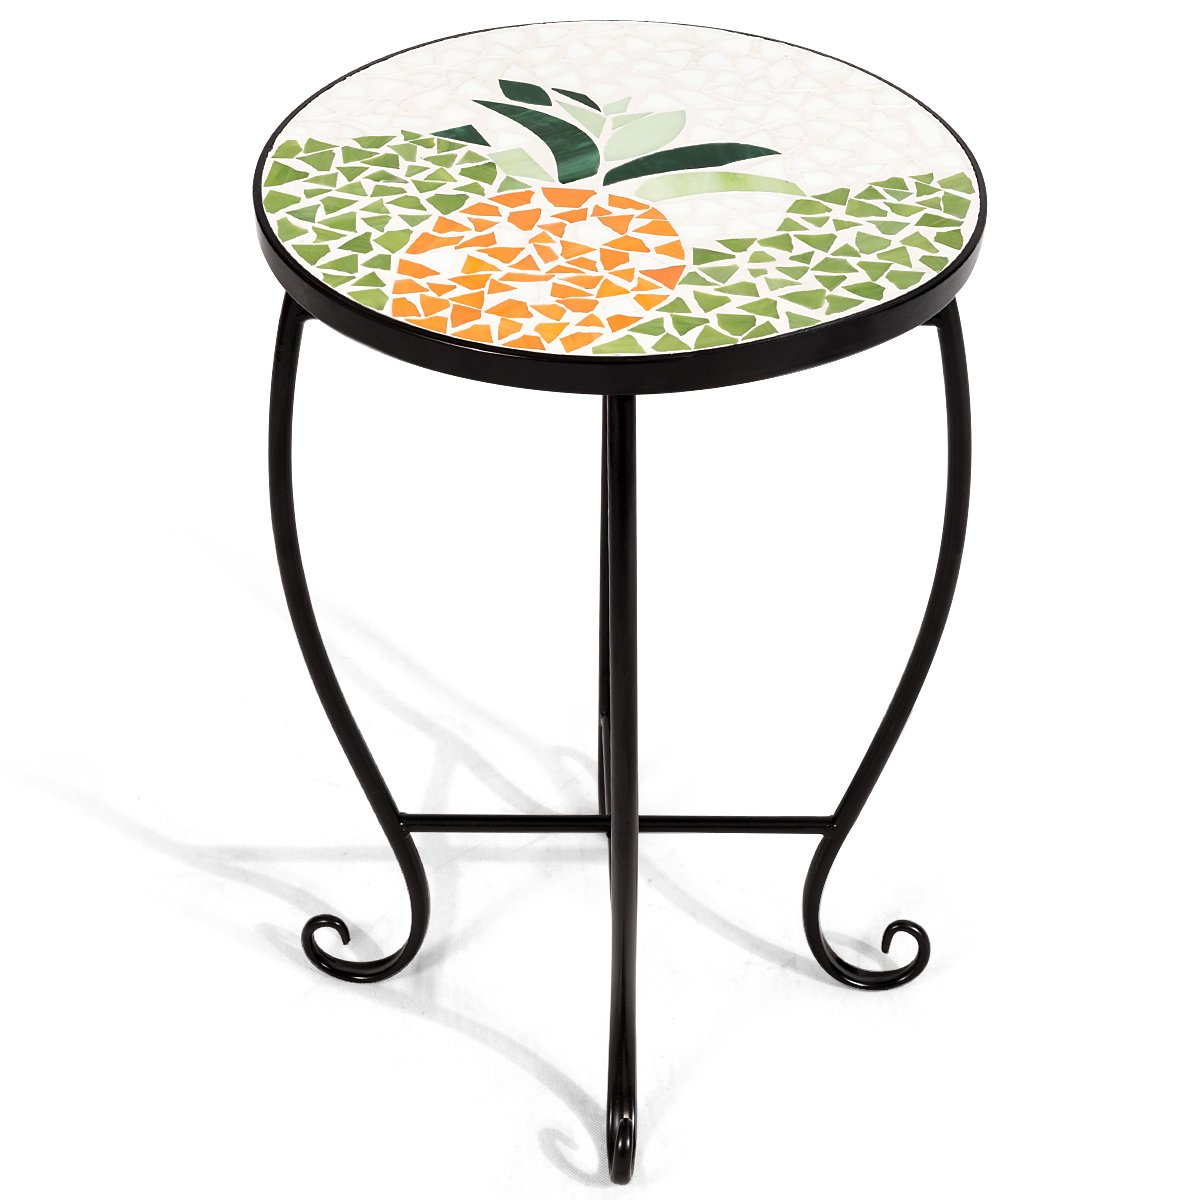 Giantex Mosaic Round Side Accent Table Patio Plant Stand Porch Beach Theme Balcony Back Deck Pool Decor Metal Cobalt Glass Top Indoor Outdoor Coffee End Table (Sweet Pineapple)